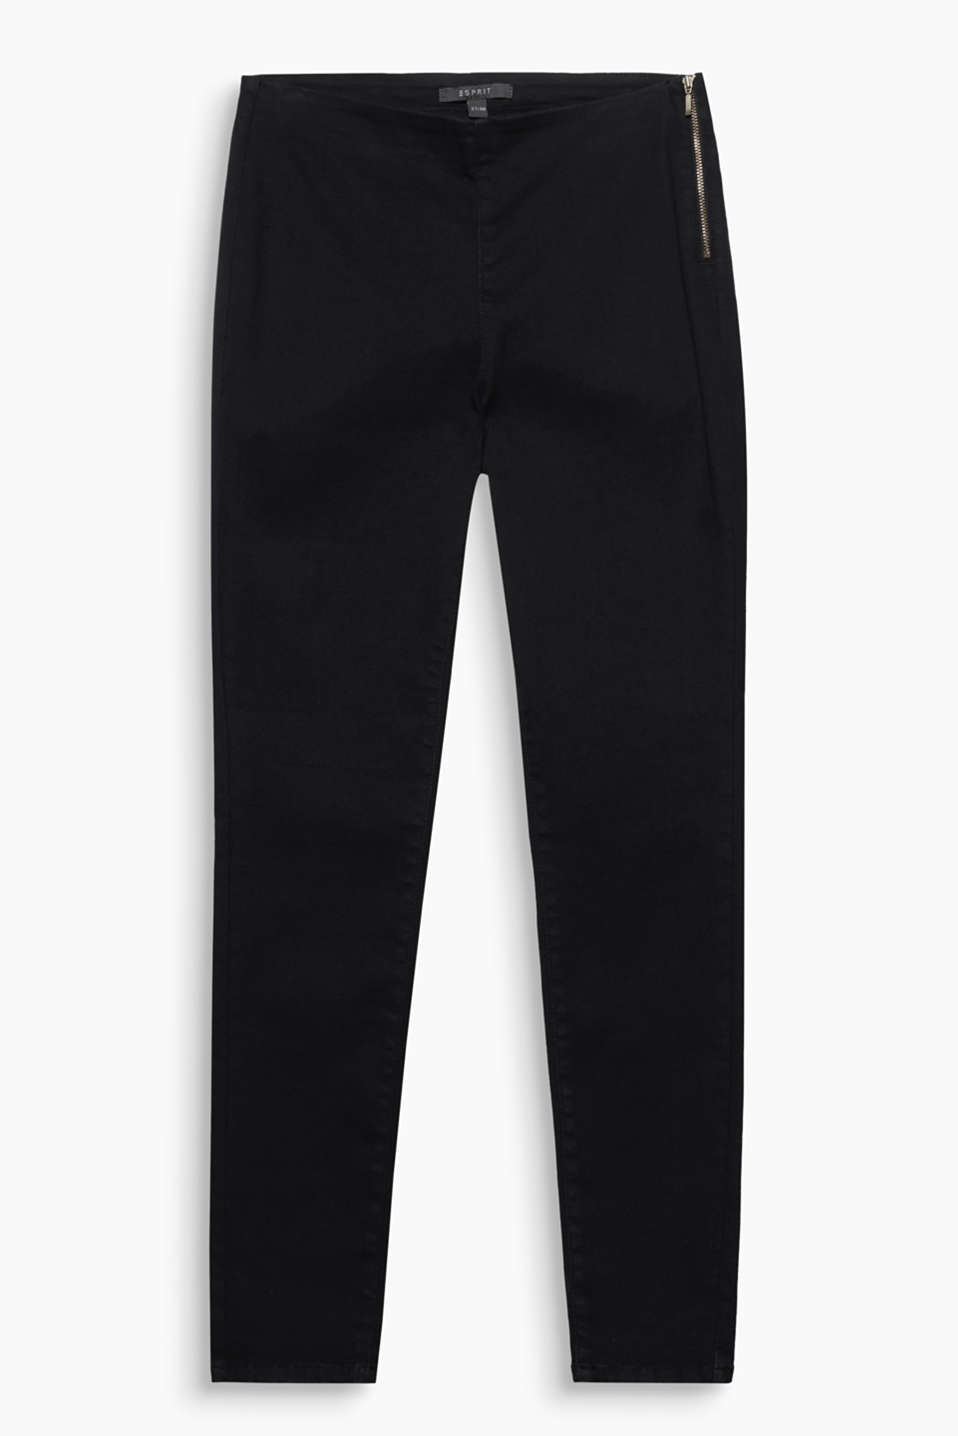 Skinny, lovely, stretchy: modern trousers in a slim fit with a zip on the side of the waist